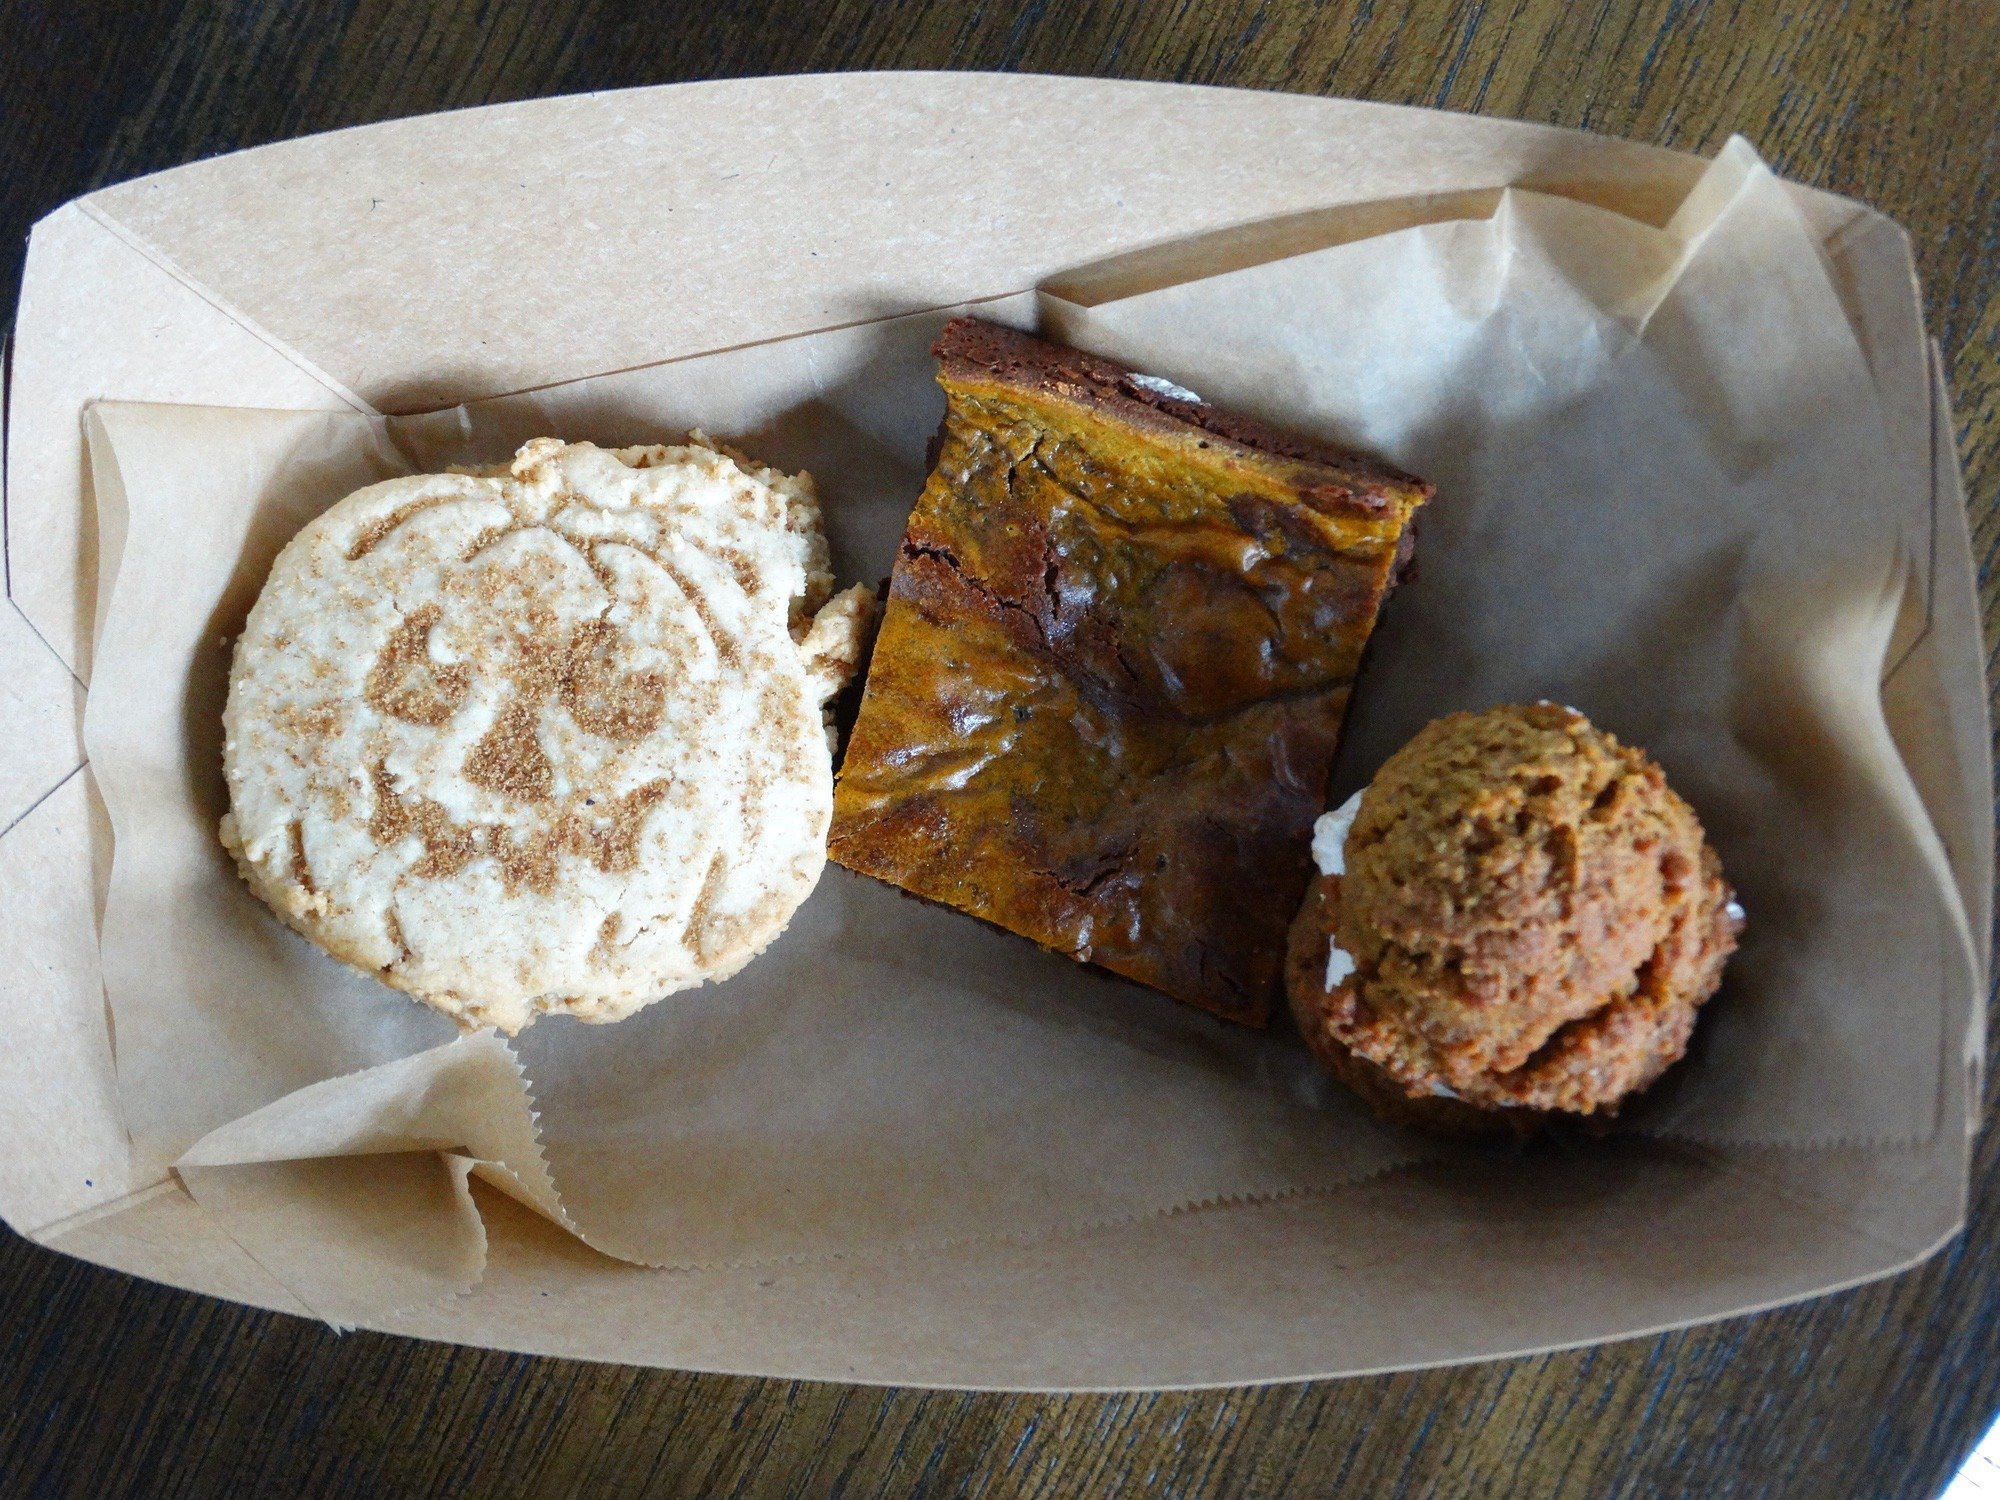 Paleo Foods and More a local, organic option for eating out 1